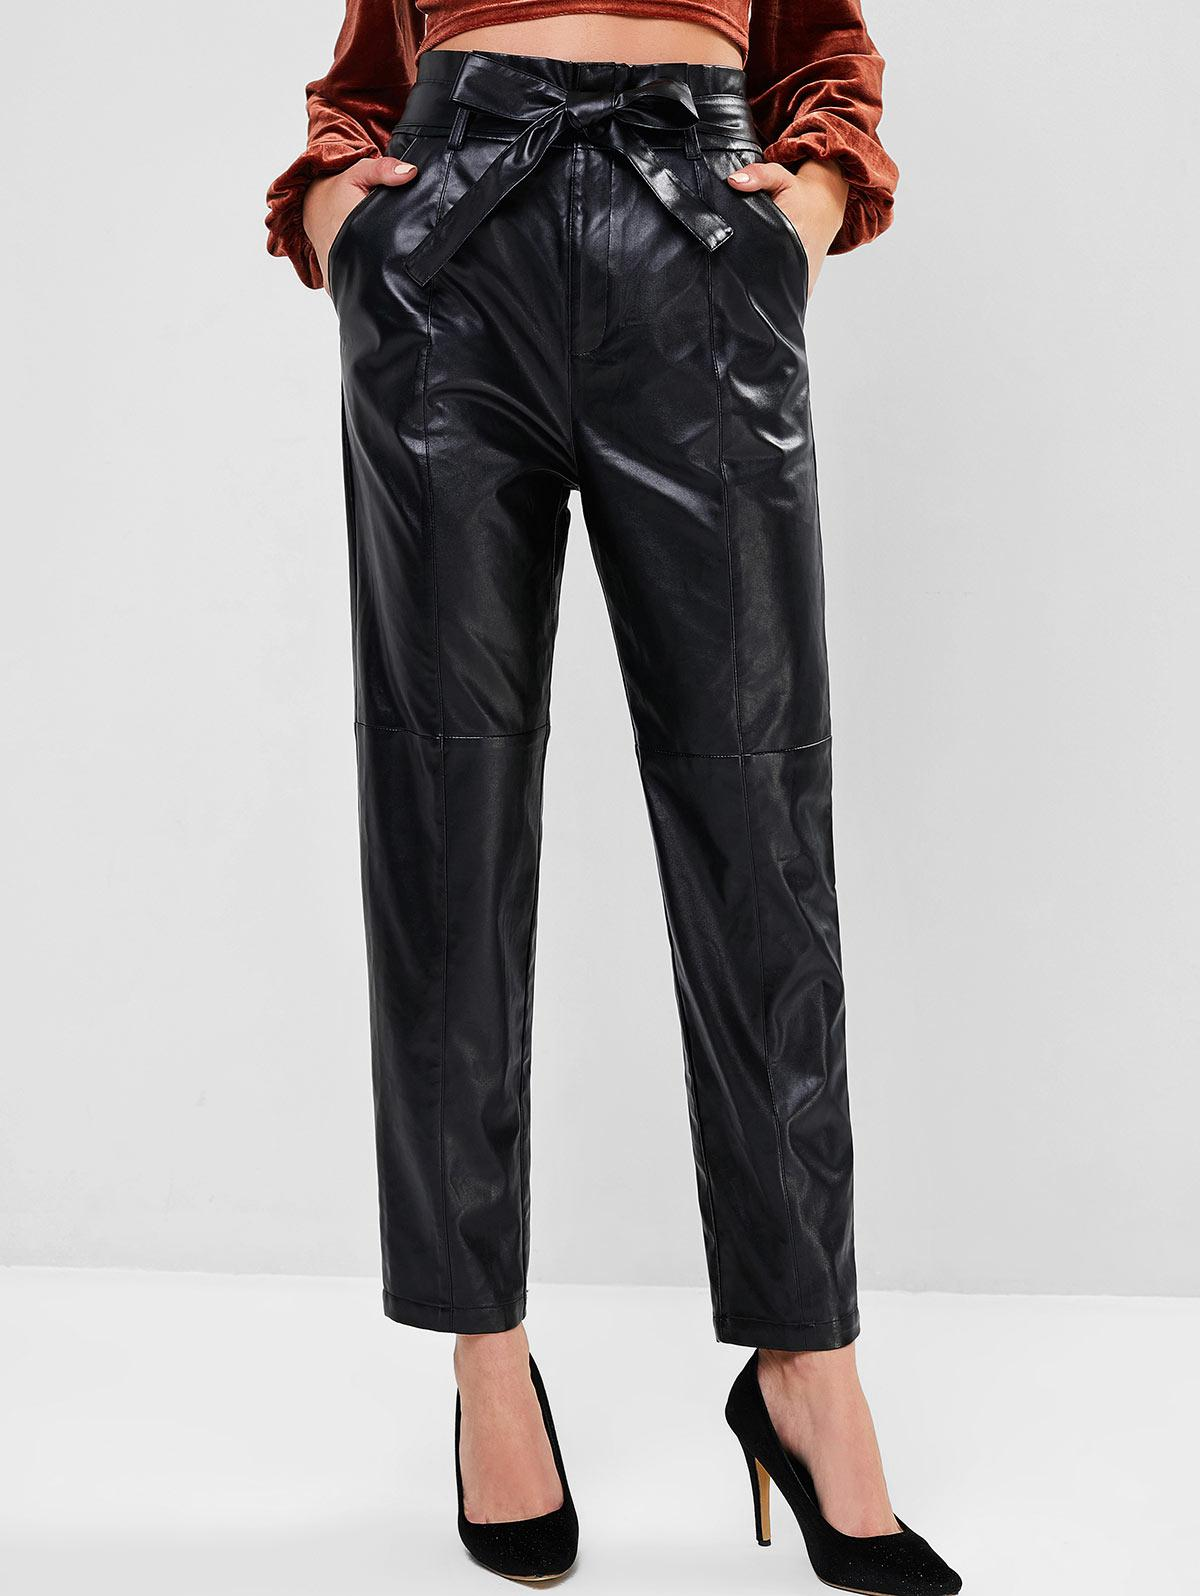 ZAFUL High Waist Belted Faux Leather Pants